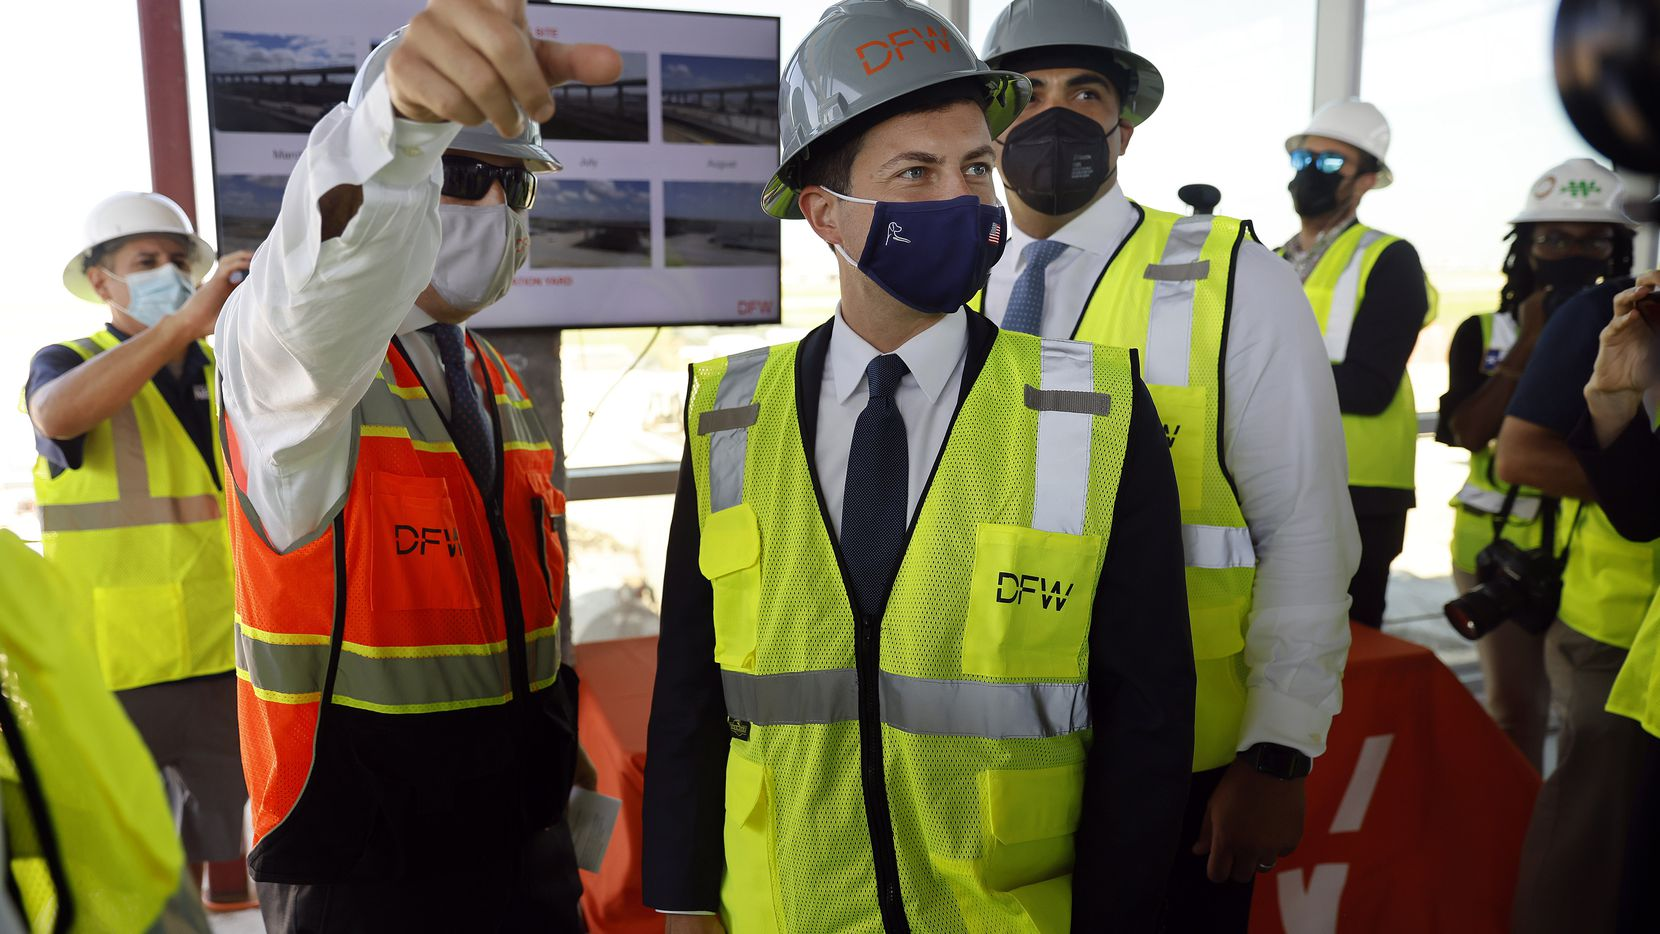 DFW Airport Executive Vice President of Infrastructure and Development Khaled Naja (left) points out construction features to U.S. Transportation Secretary Pete Buttigieg (right) as they tour building sections of the new Terminal C remodel at DFW International Airport. He came to see and hear how the Bipartisan Infrastructure Deal's investments in jobs,airports and transit will benefit the area, Wednesday, August 11, 2021. (Tom Fox/The Dallas Morning News)